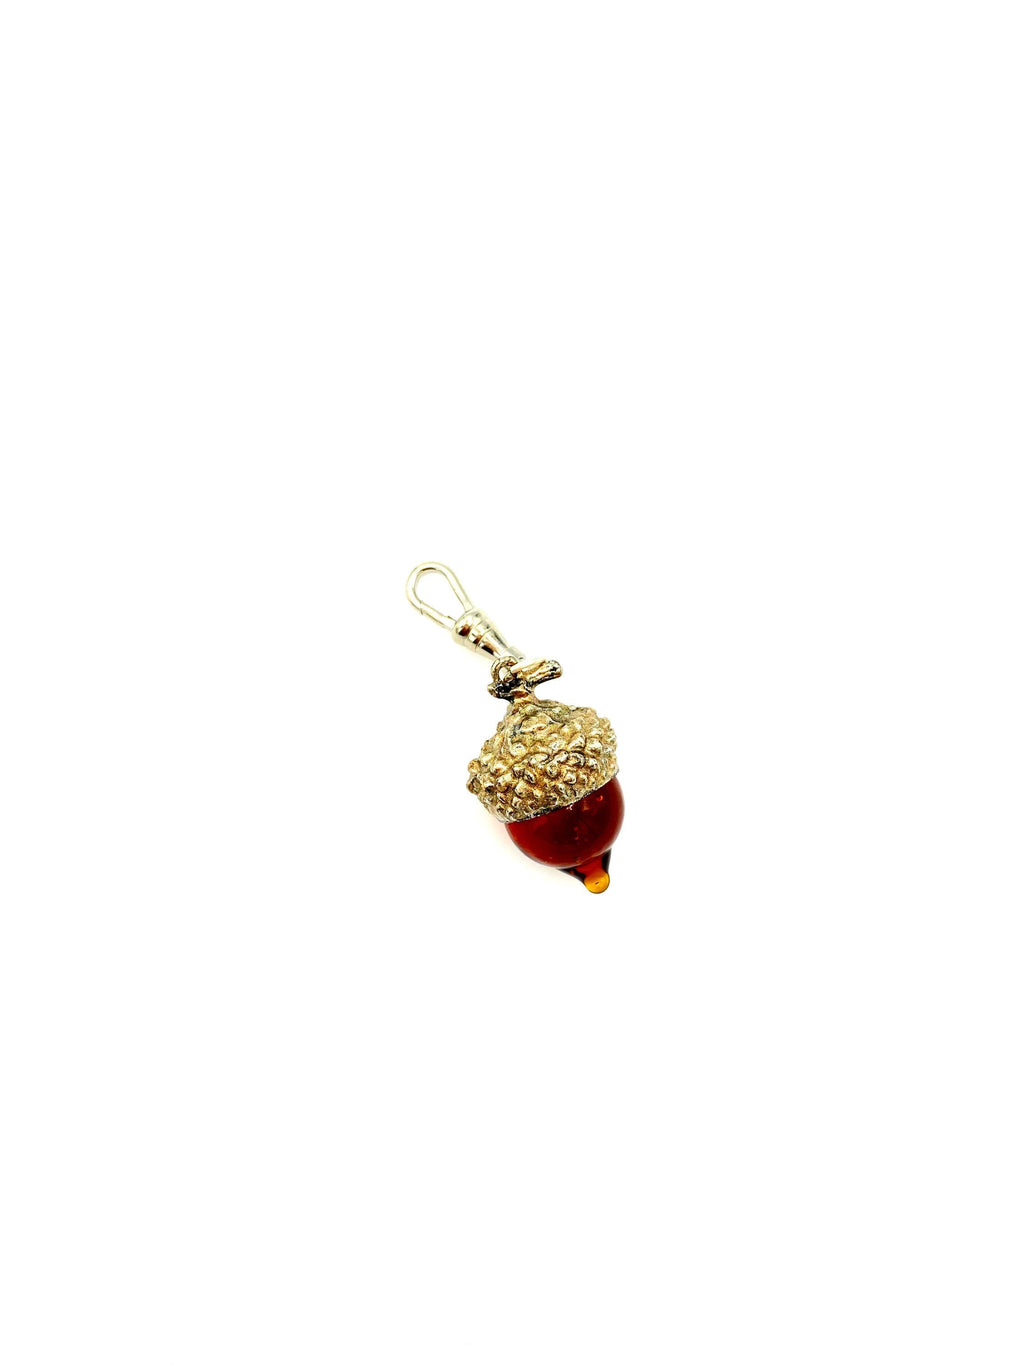 Brown Glass Acorn Charm Swivel Fob Jewelry